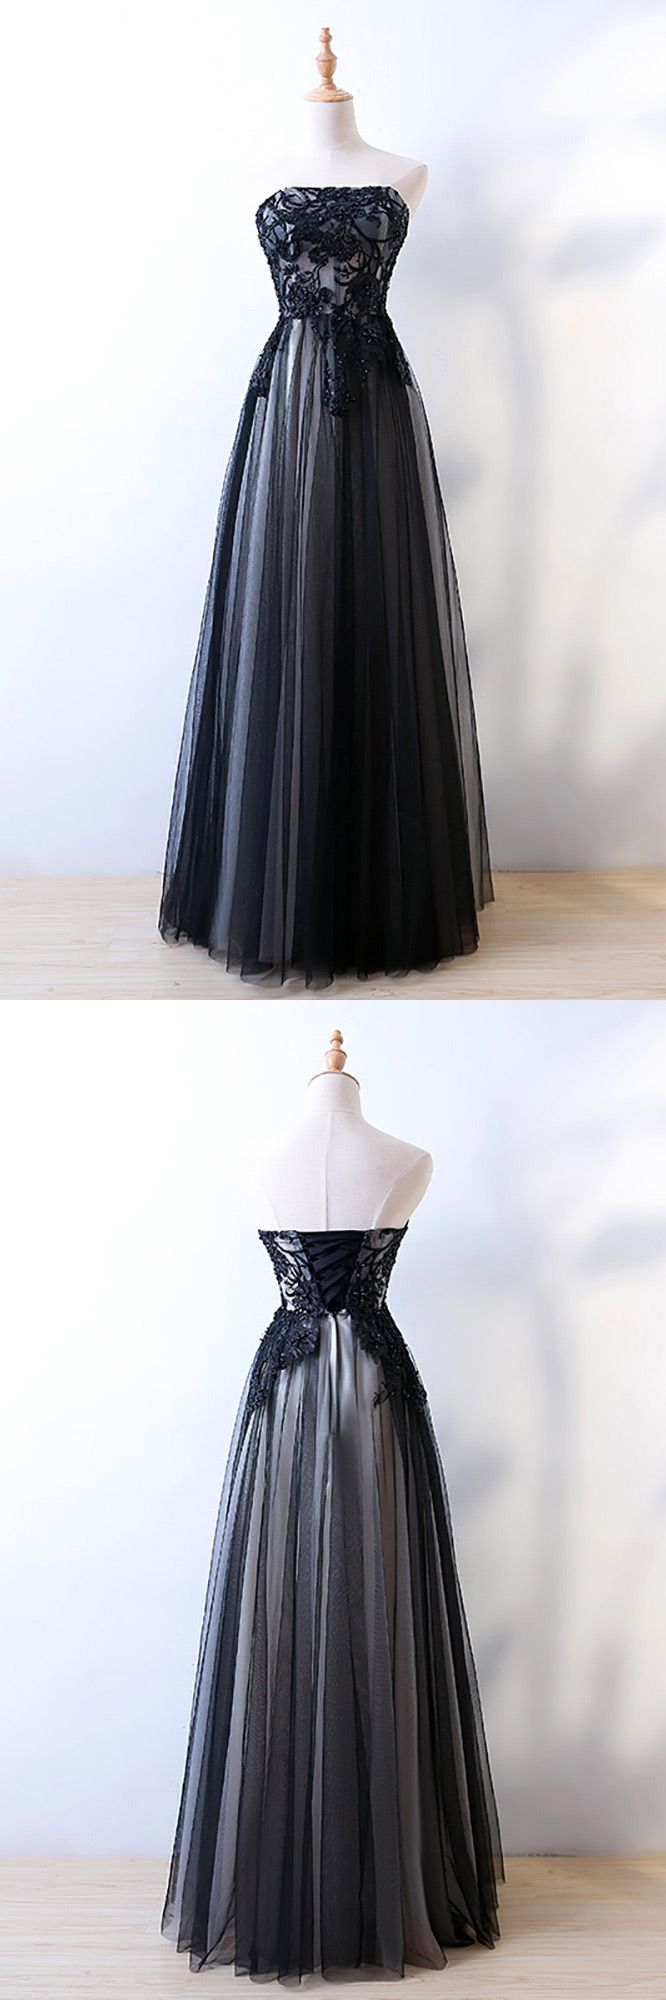 Only $118, Strapless Sheath Long Black Prom Formal Dress With Corset Back #MYX18220 at #SheProm. SheProm is an online store with thousands of dresses, range from Prom,Formal,Evening,Black,Long Black Dresses,Long Dresses and so on. Not only selling formal dresses, more and more trendy dress styles will be updated daily to our store. With low price and high quality guaranteed, you will definitely like shopping from us. Shop now to get $10 off!